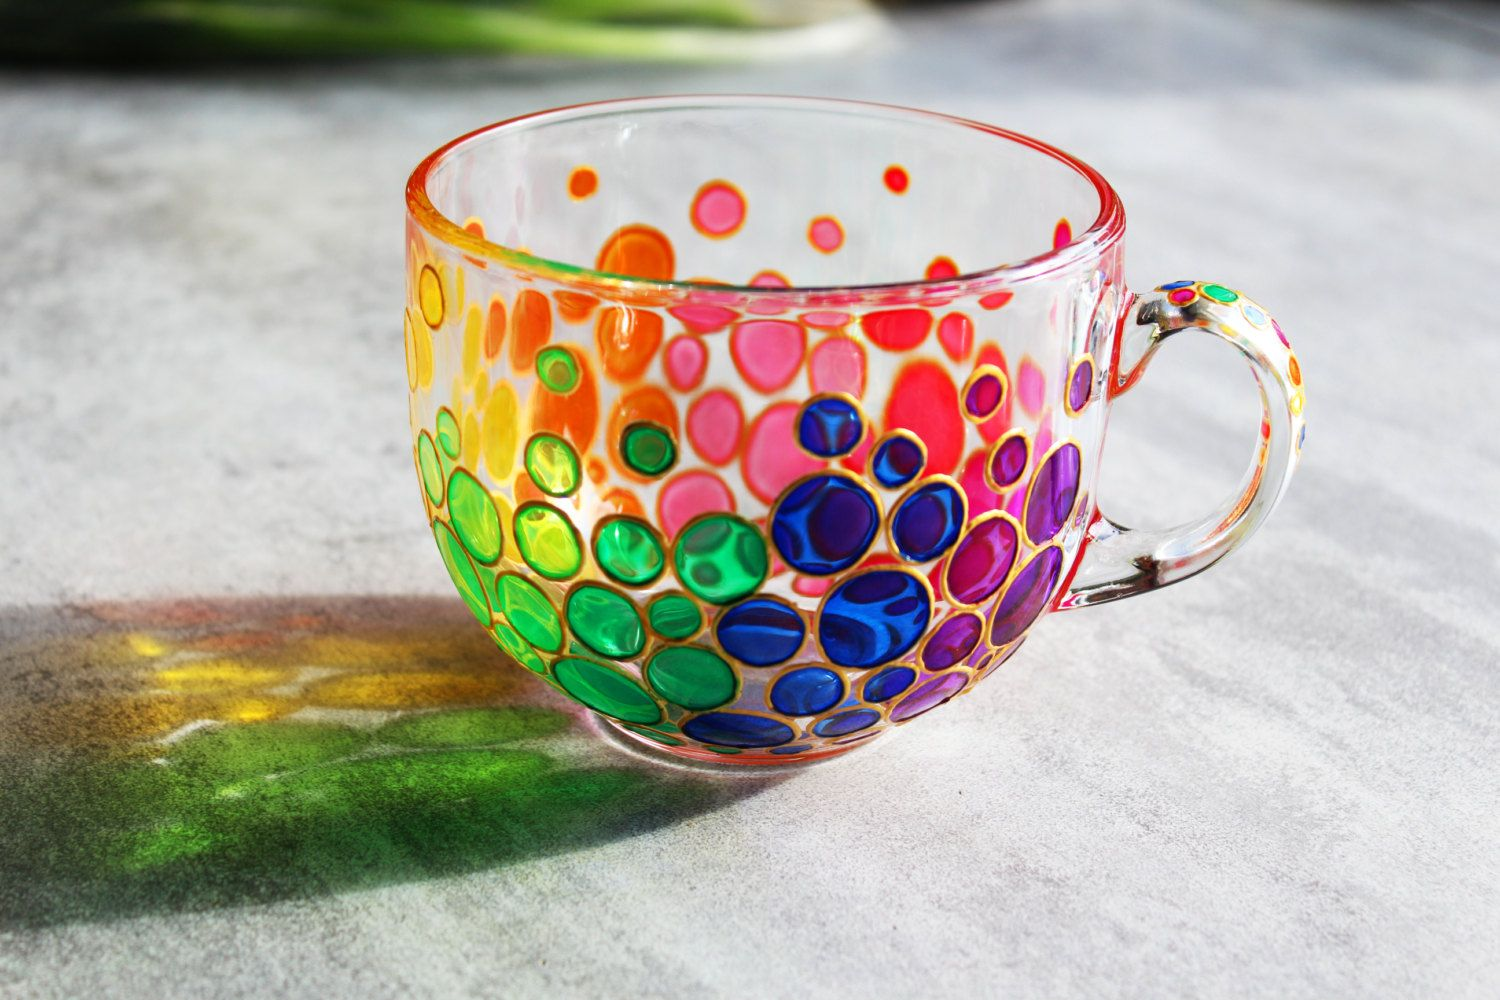 Bubbles Big Painted Coffee Mug Colorful Mosaic Cup Rainbow